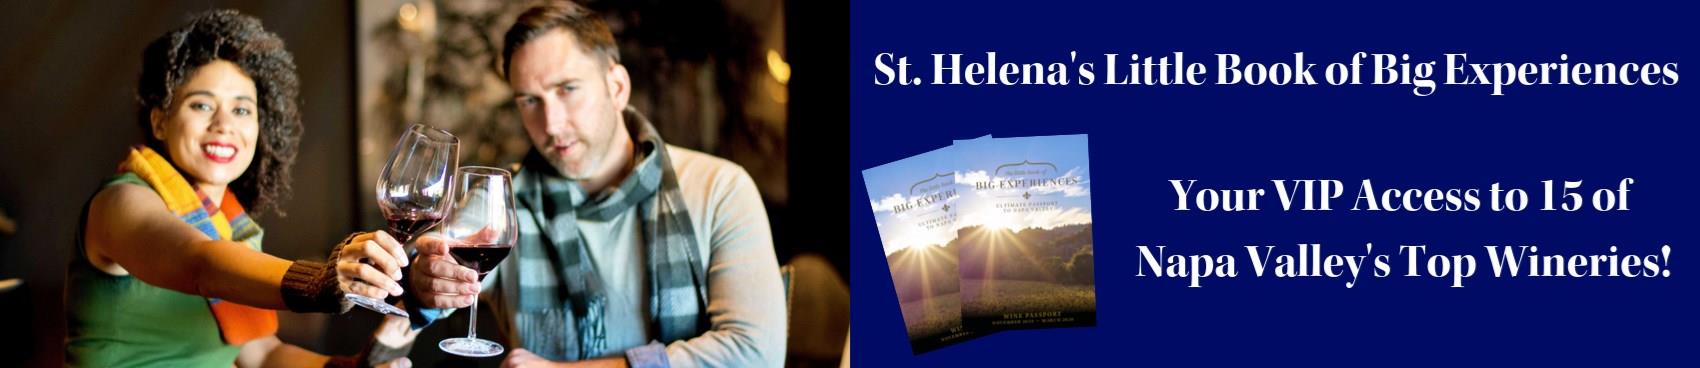 Purchase Tickets to St. Helena's Little Book of Big Experiences at St. Helena Chamber of Commerce on CellarPass